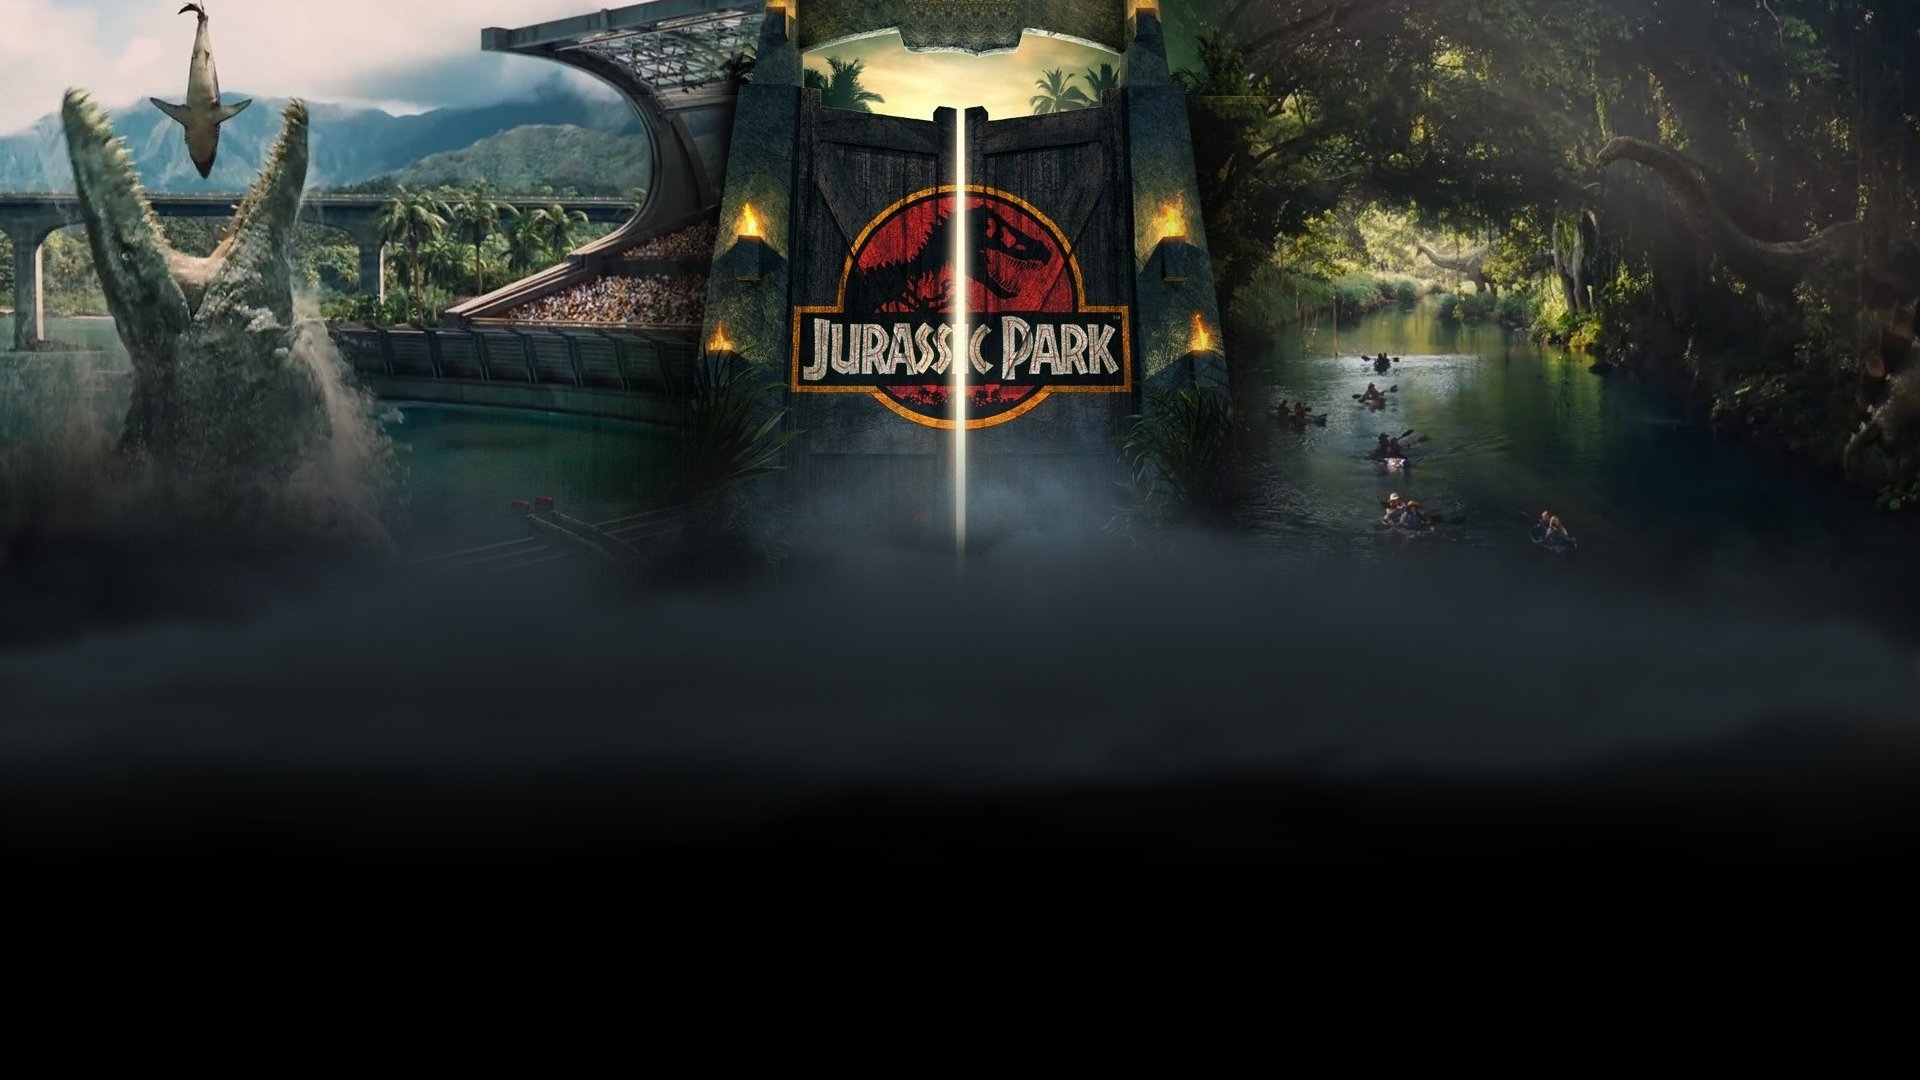 124 jurassic park hd wallpapers | background images - wallpaper abyss